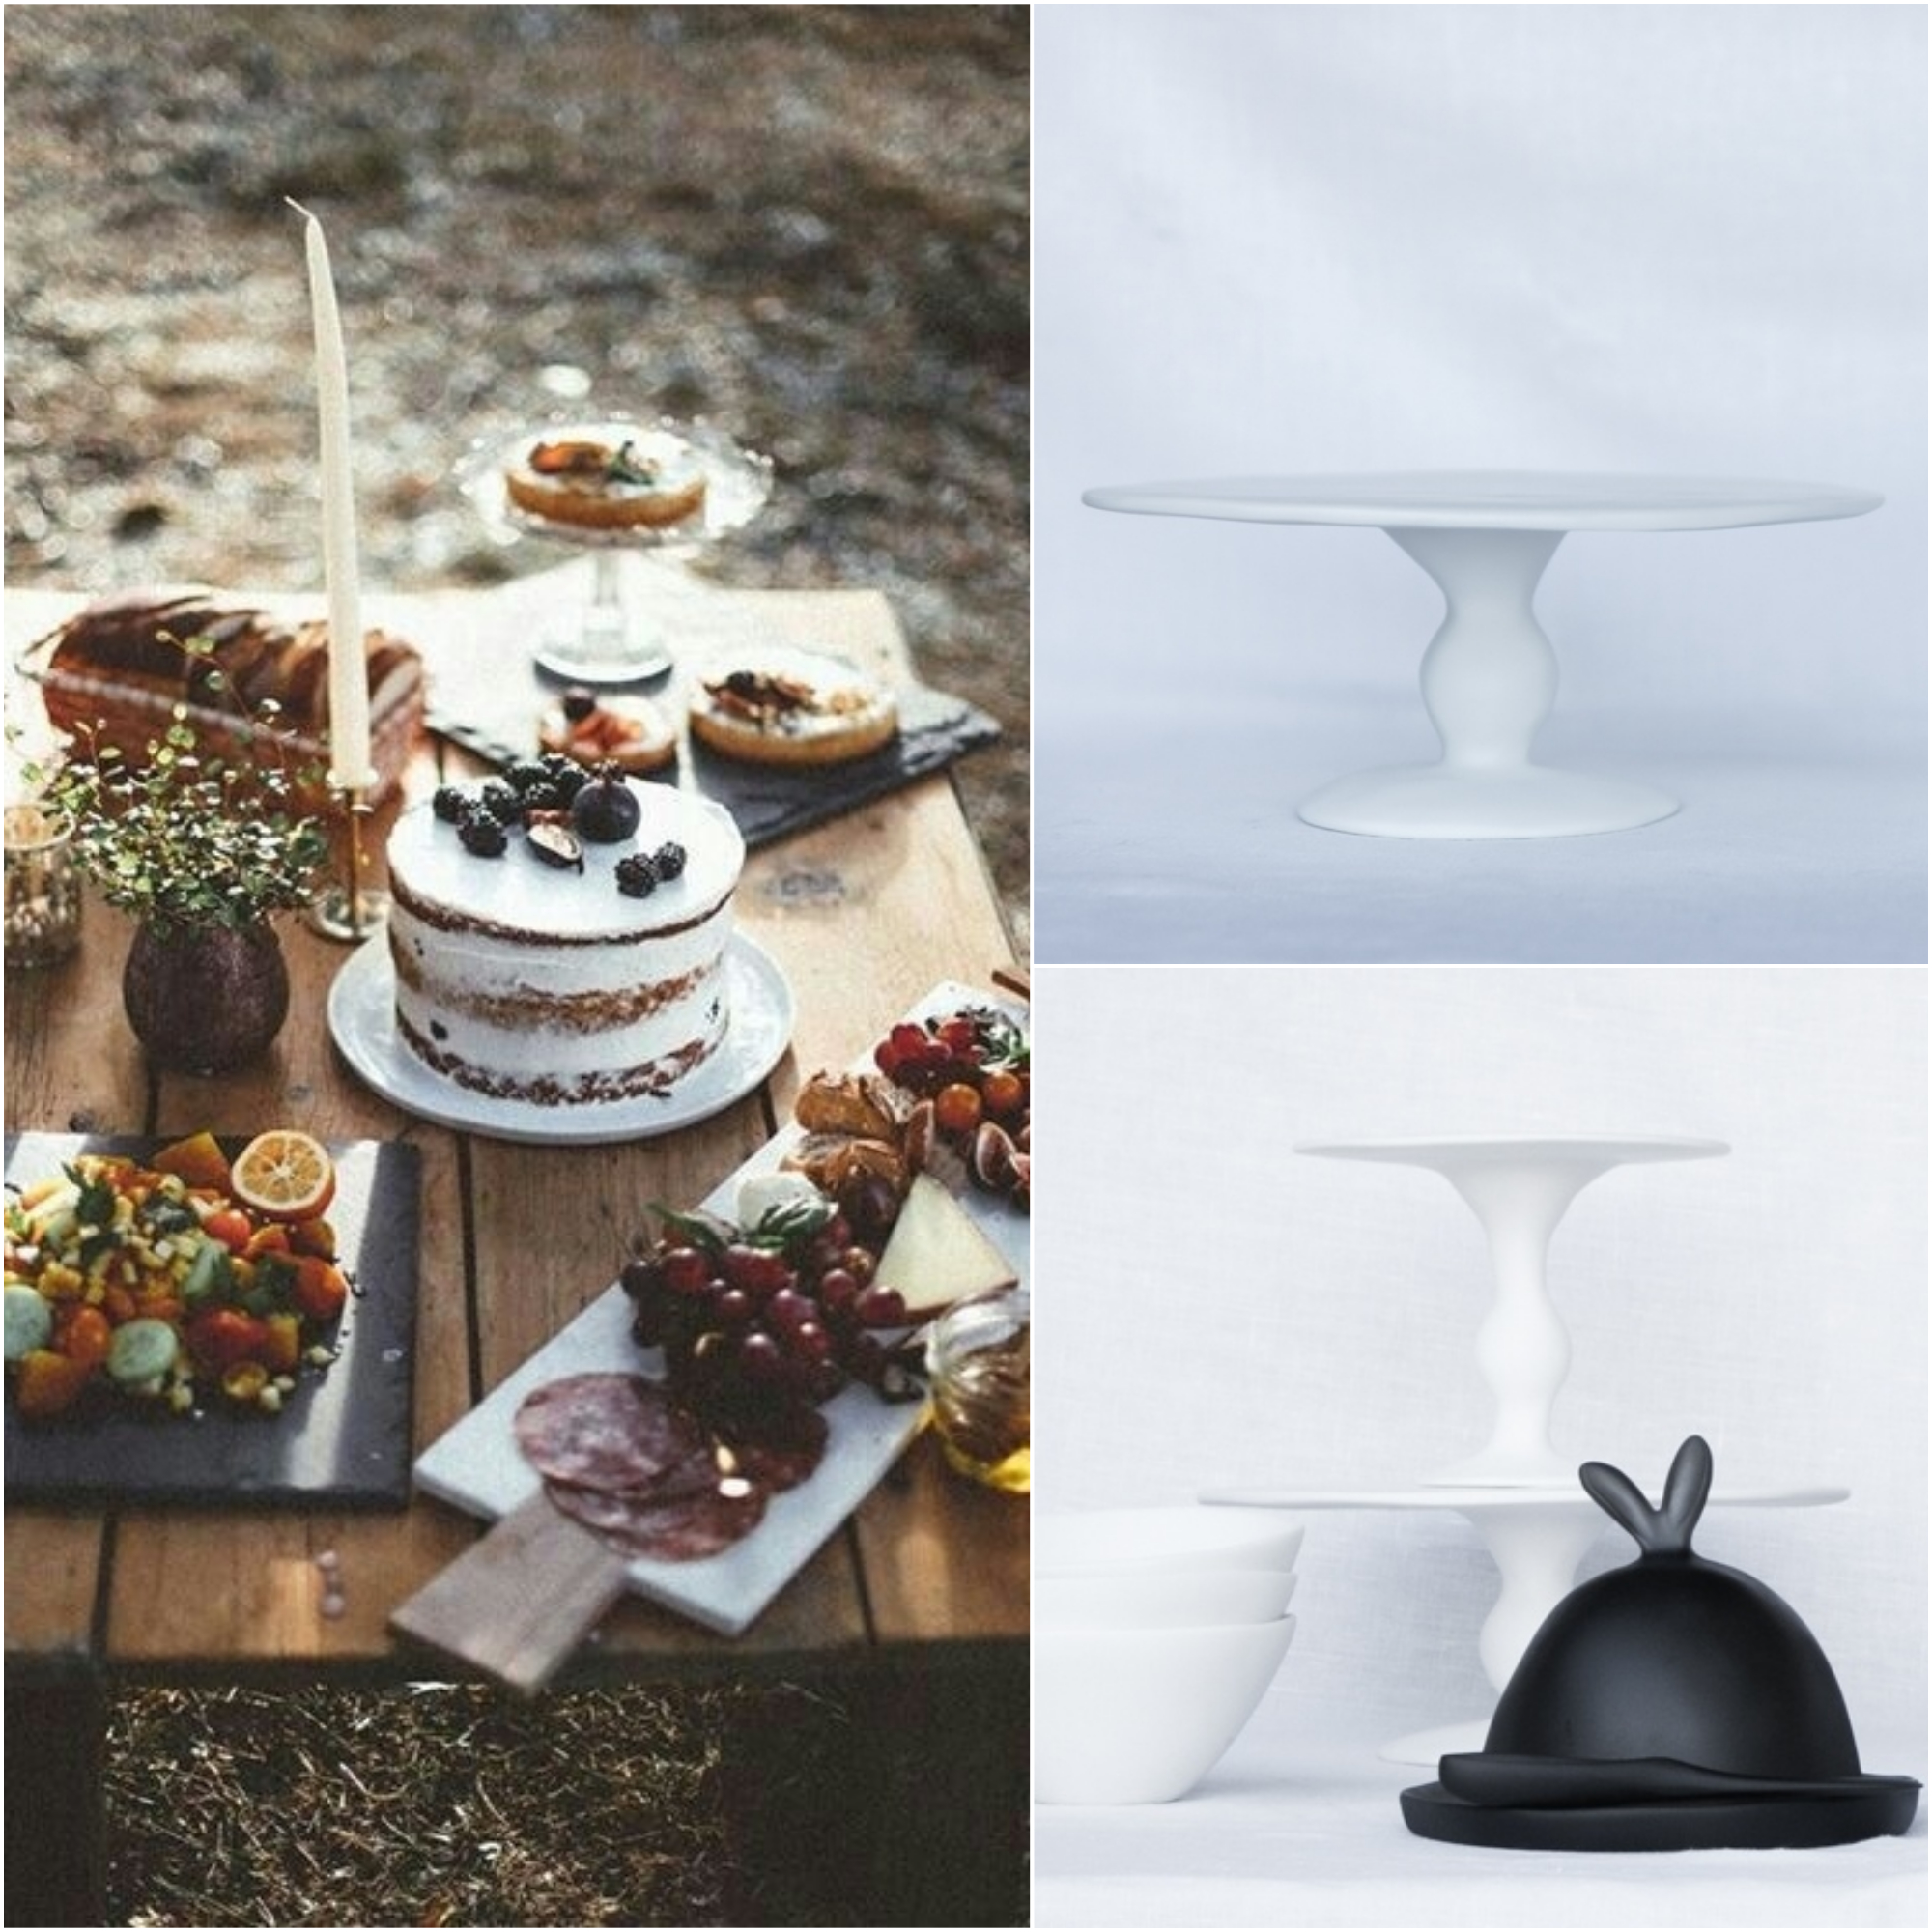 Outdoor party cake stands